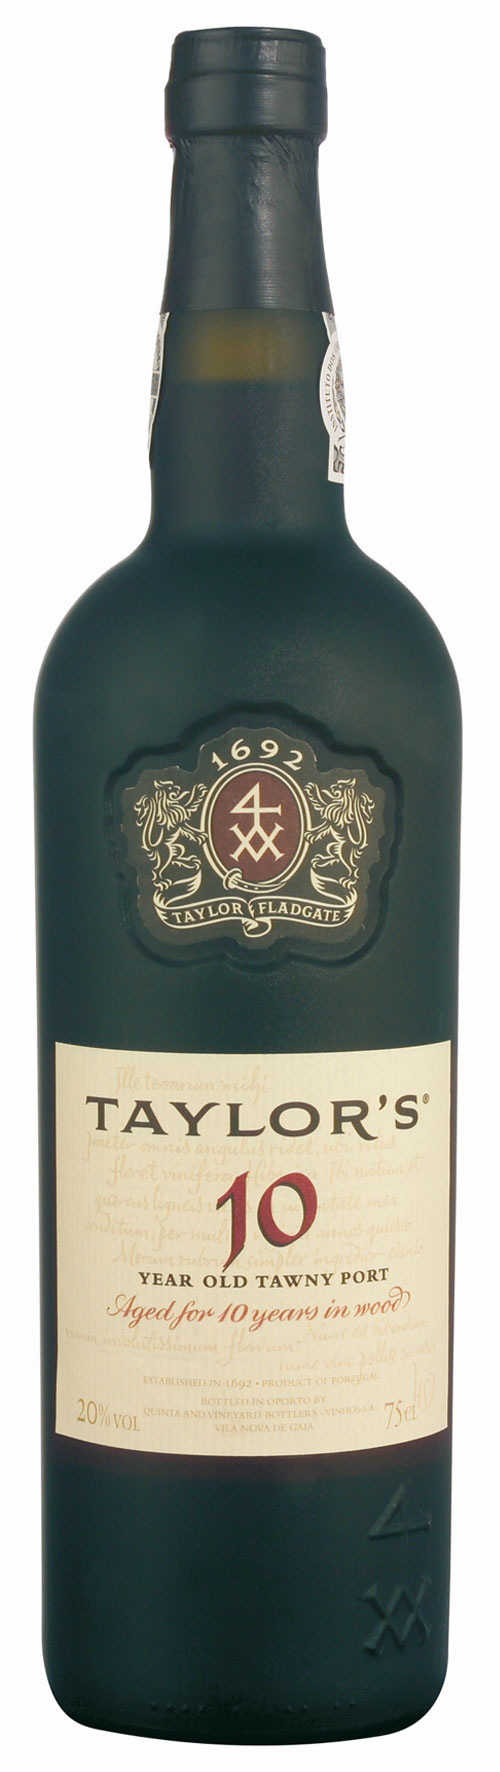 Taylor's Tawny 10 Years Old Portwein